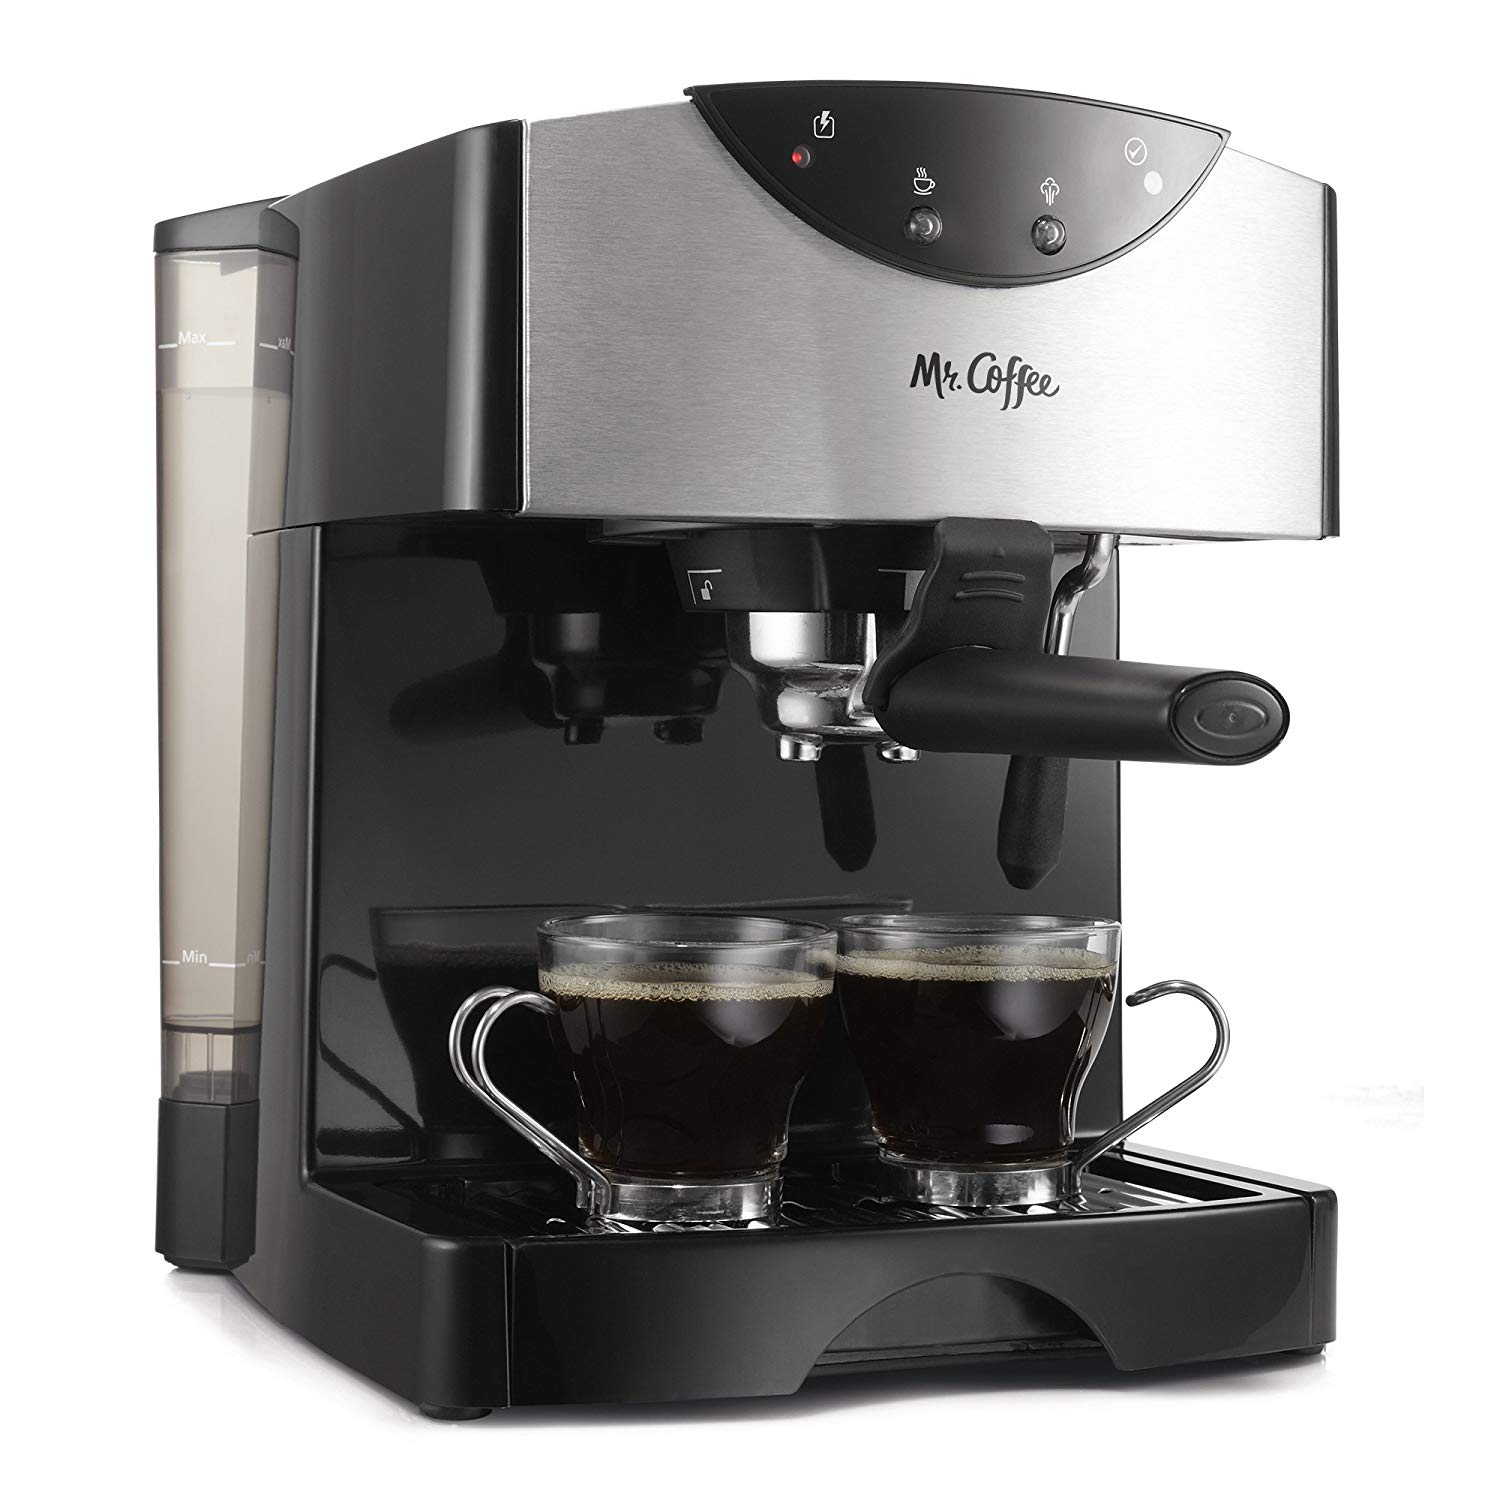 Mr. Coffee Automatic Dual Shot Espresso/Cappuccino